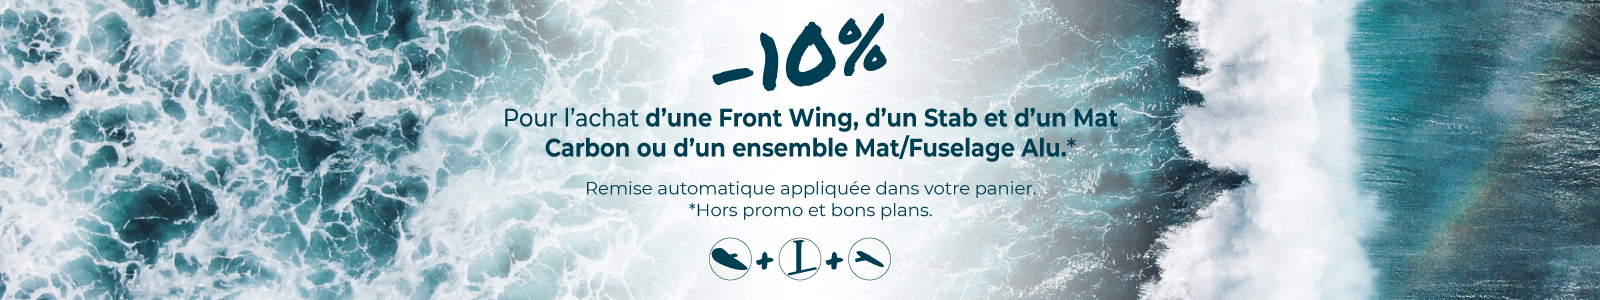 Ailes/Stabs/Fuselages/Mâts